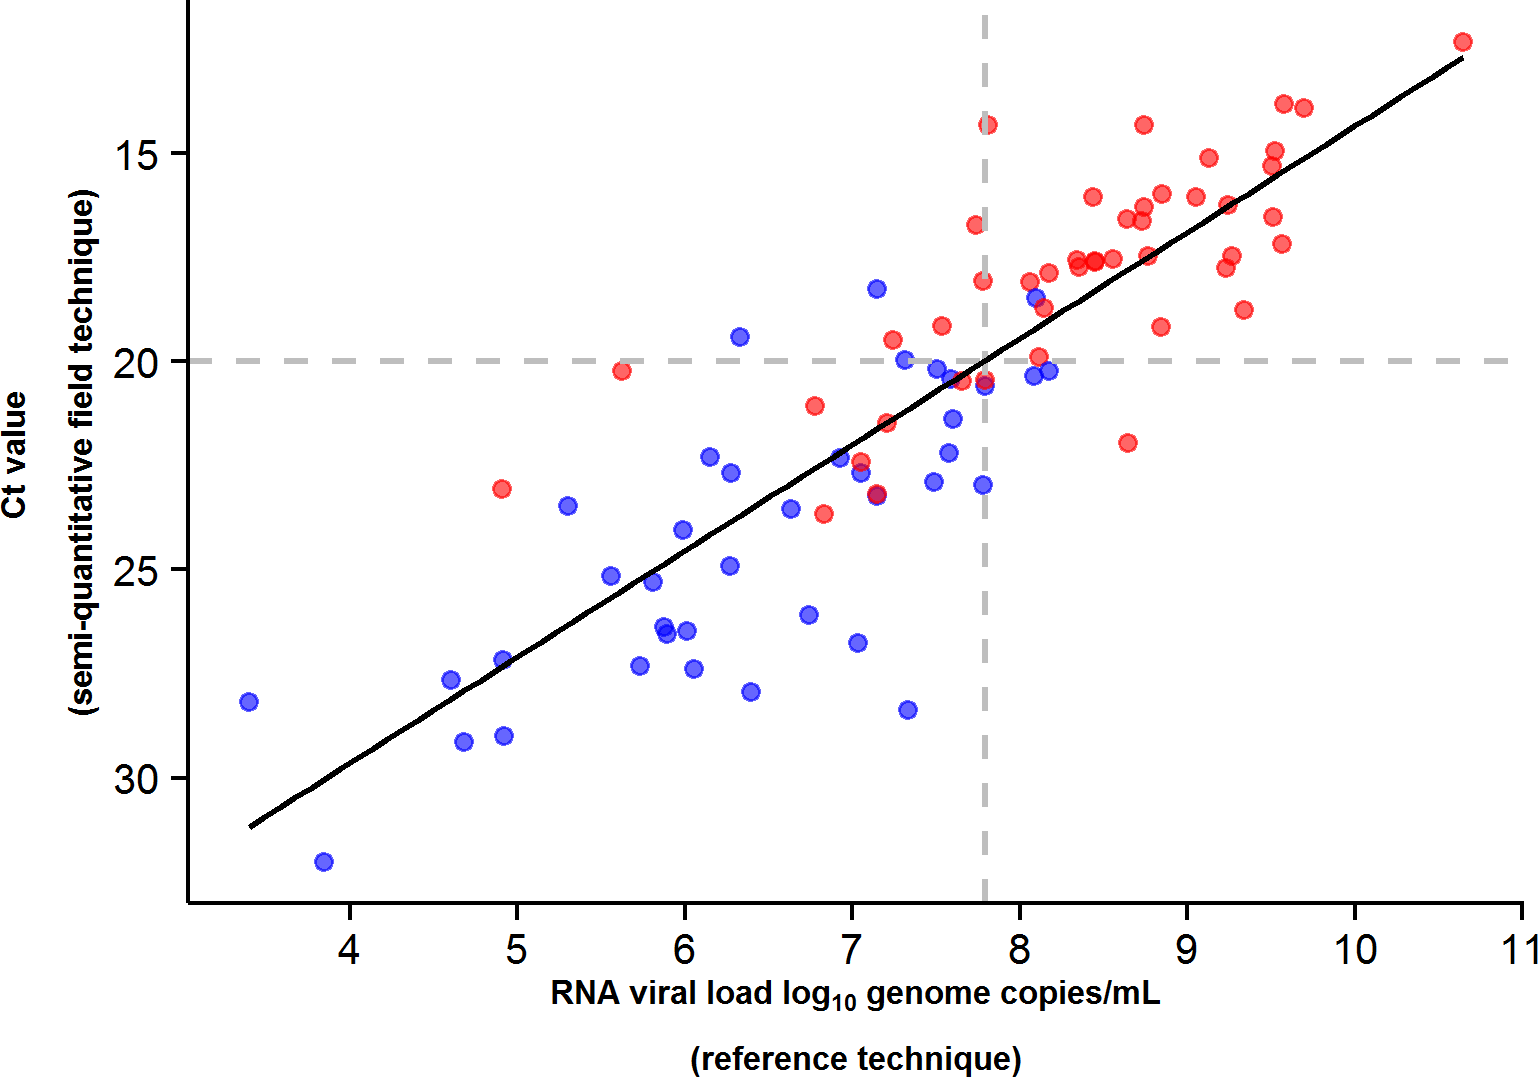 JIKI trial: correlation between EBOV RT-PCR Ct value and RNA viral load at baseline in adolescents and adults.